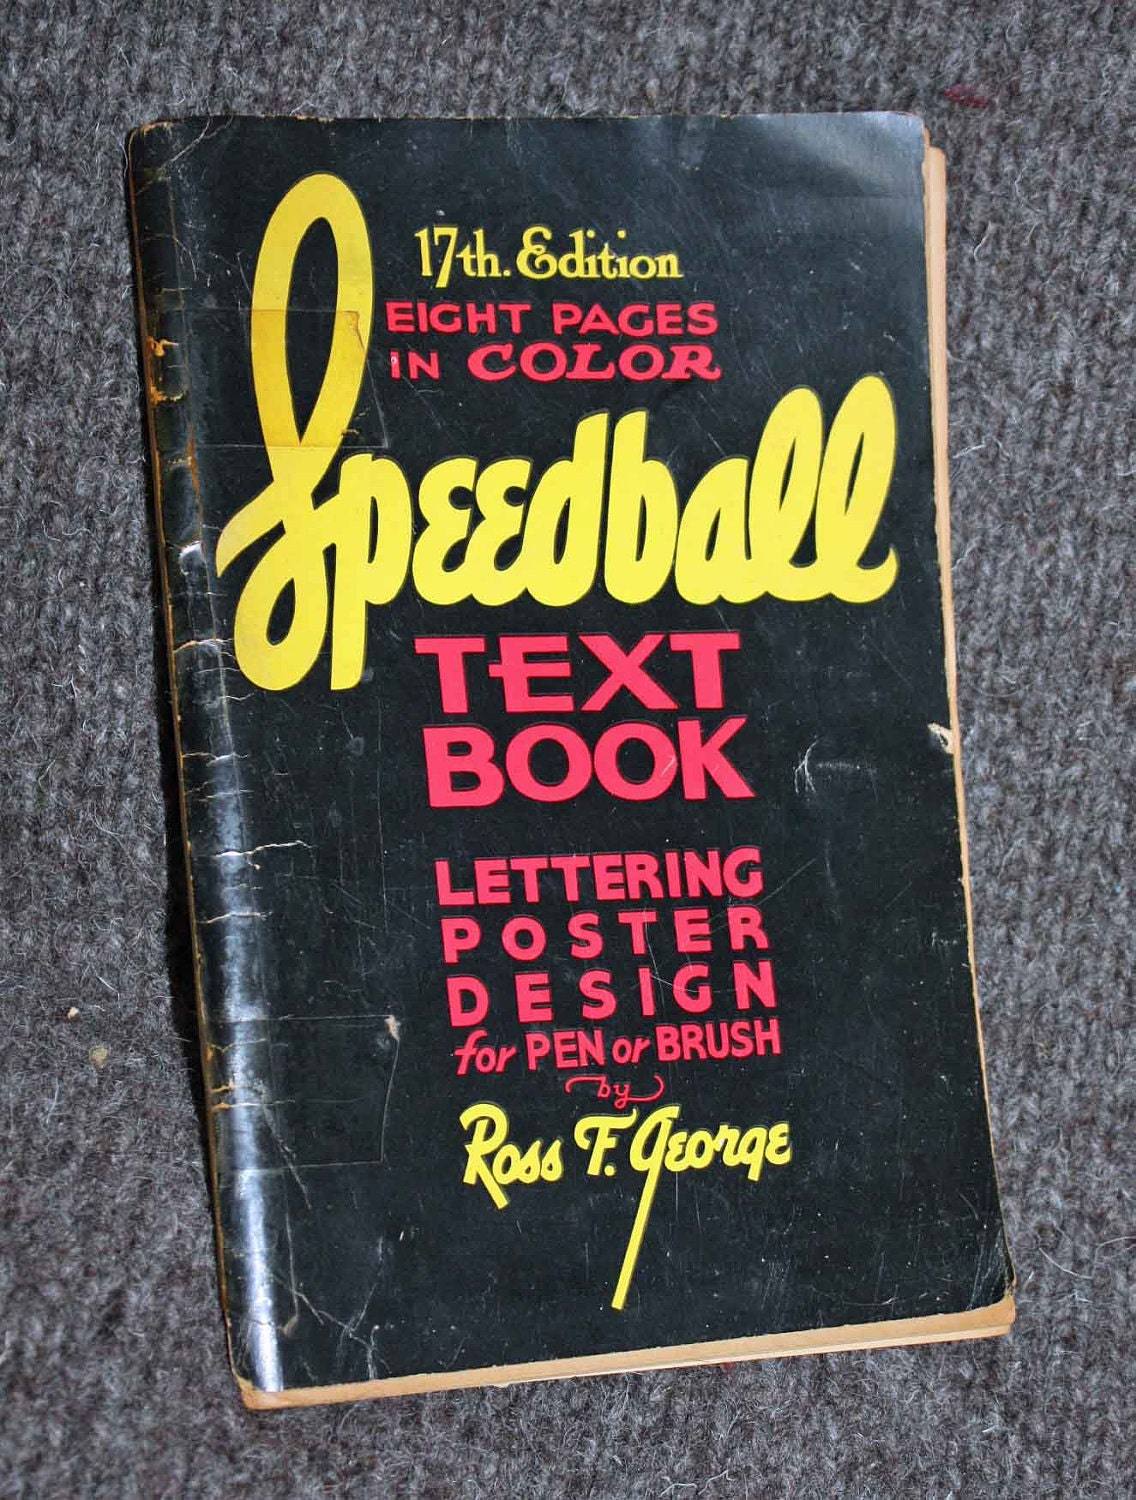 Vintage Book Speedball Text Book Lettering Poster Design For